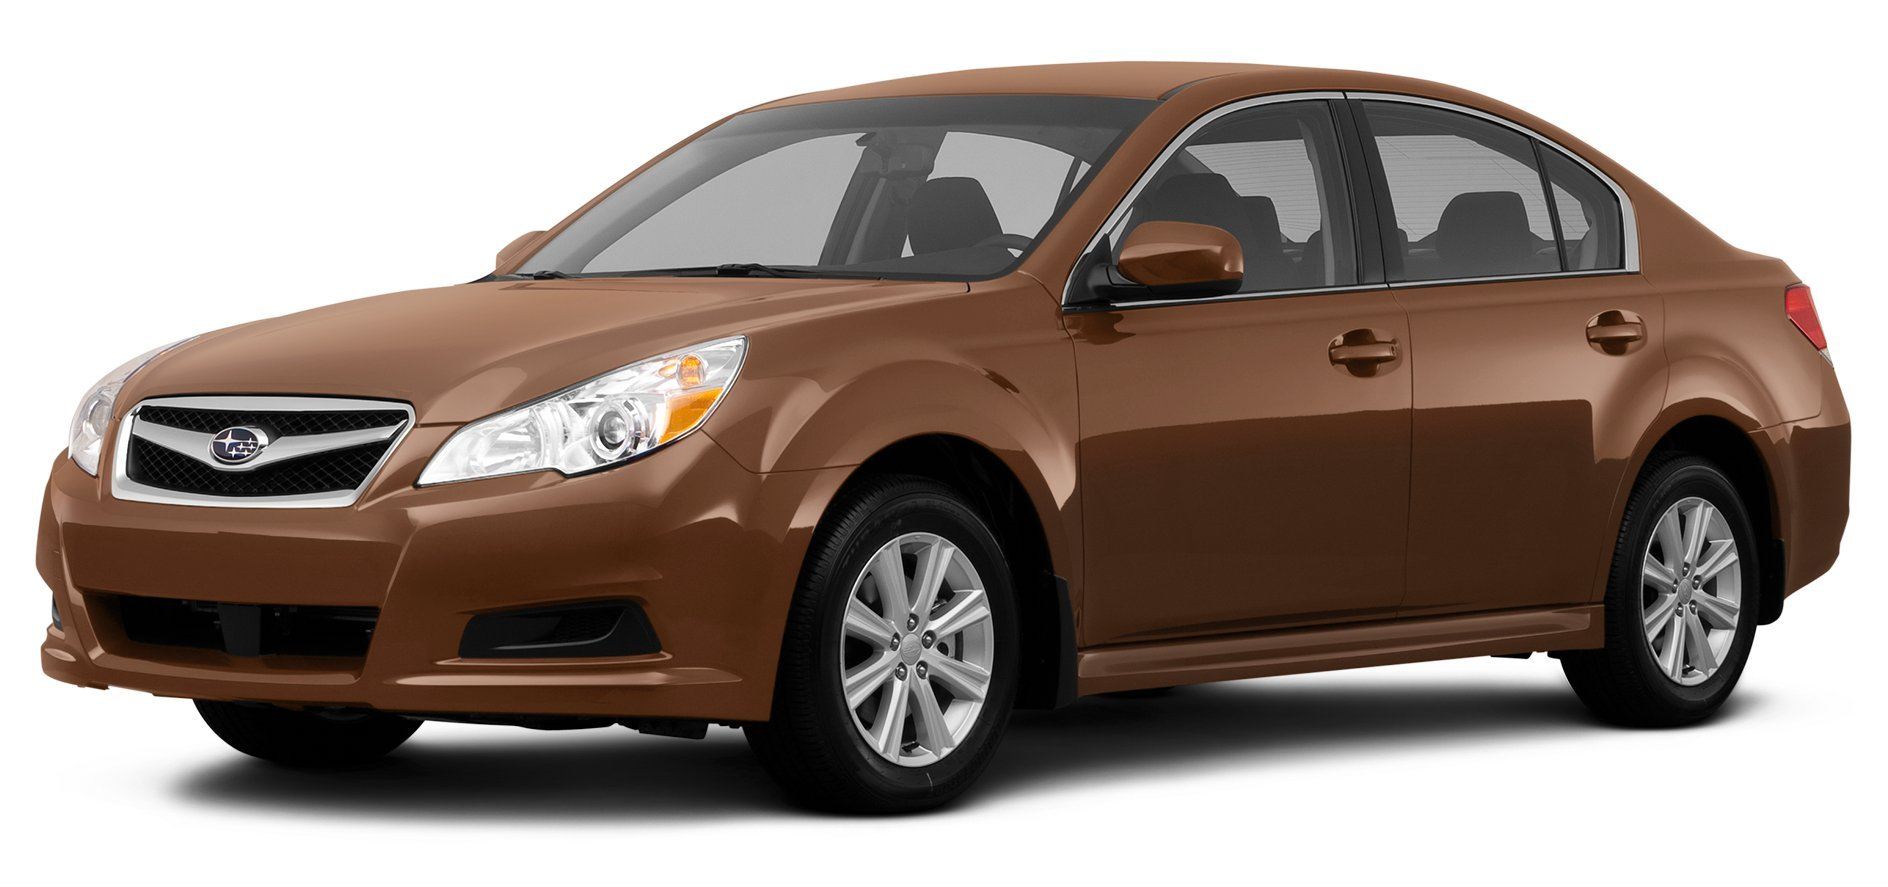 ... 2012 Subaru Legacy 2.5i, 4-Door Sedan 4-Cylinder Automatic Transmission